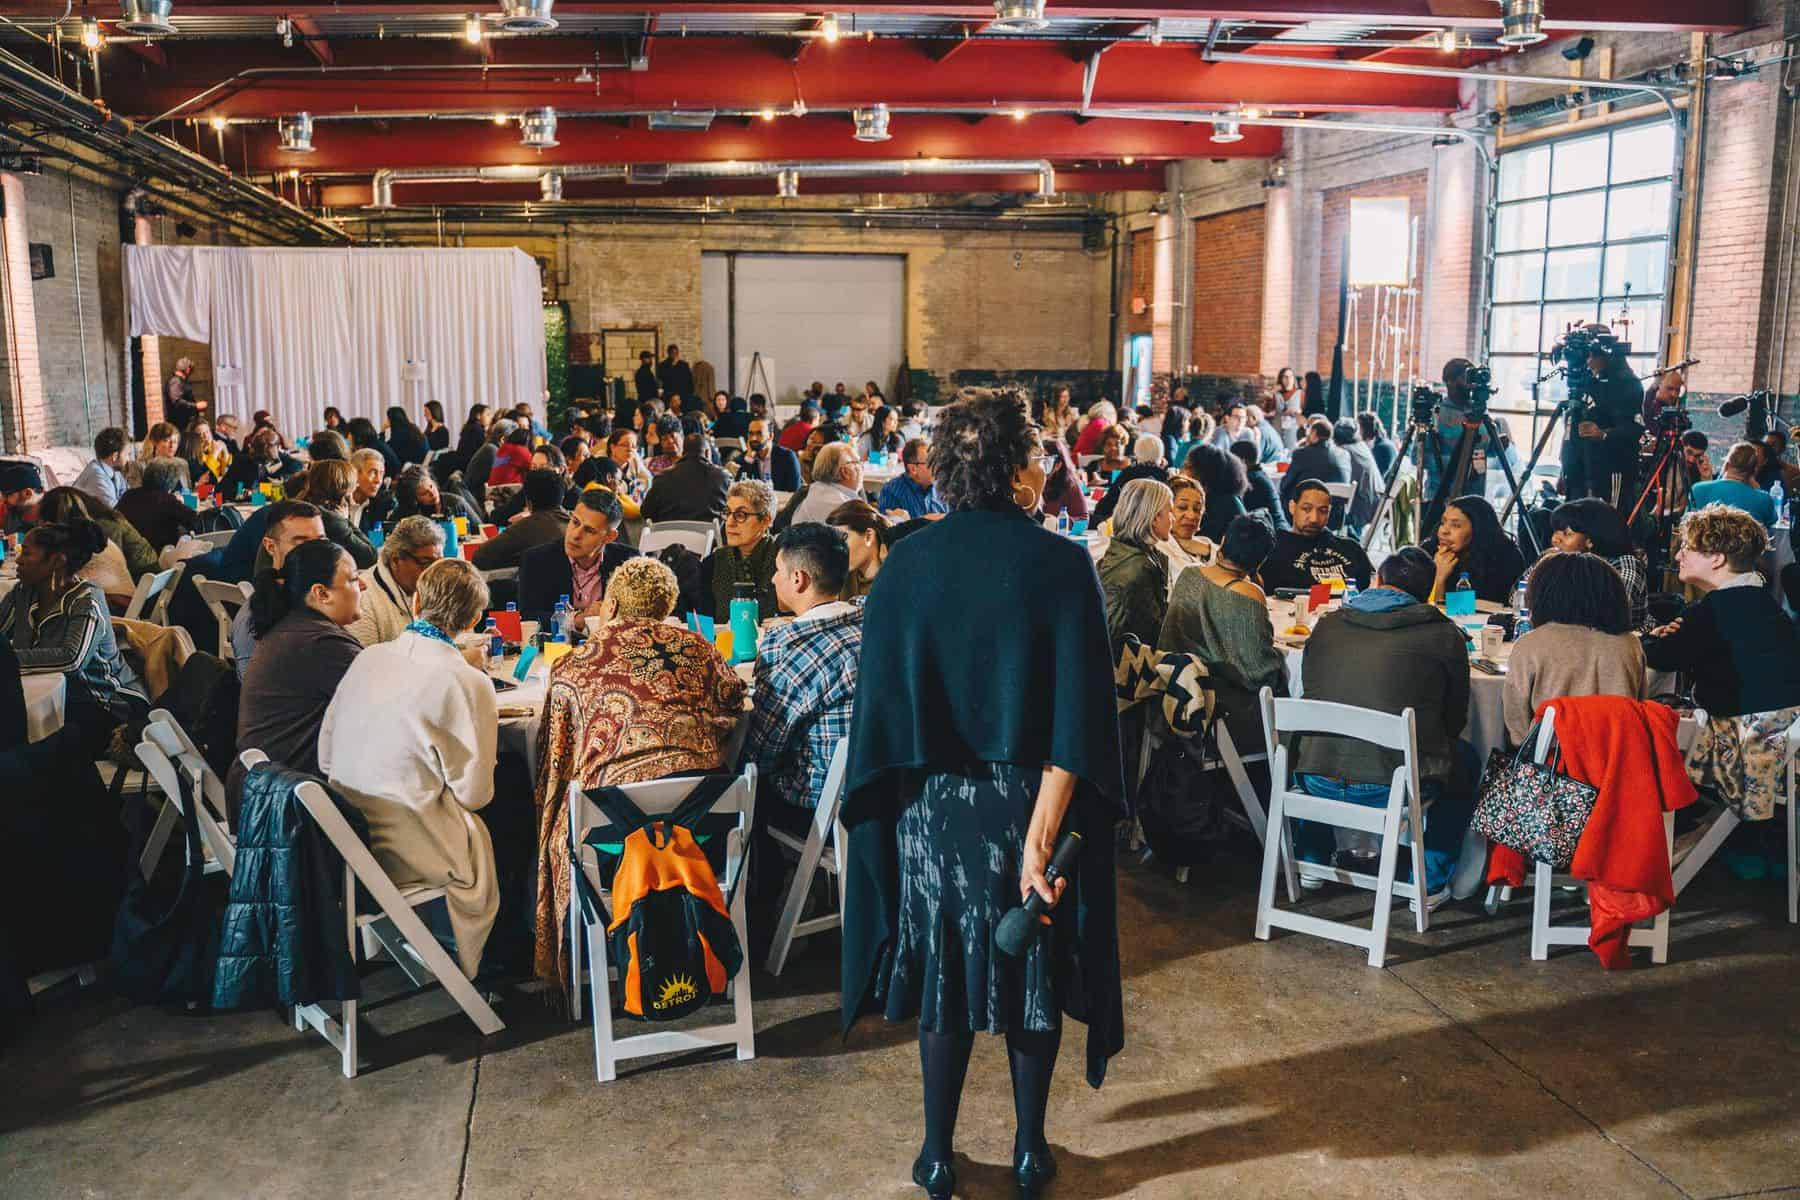 <p>A Better Arguments event in Detroit, with five guest speakers and 250 attendees, discussing the new challenges the evolving city is facing.</p>